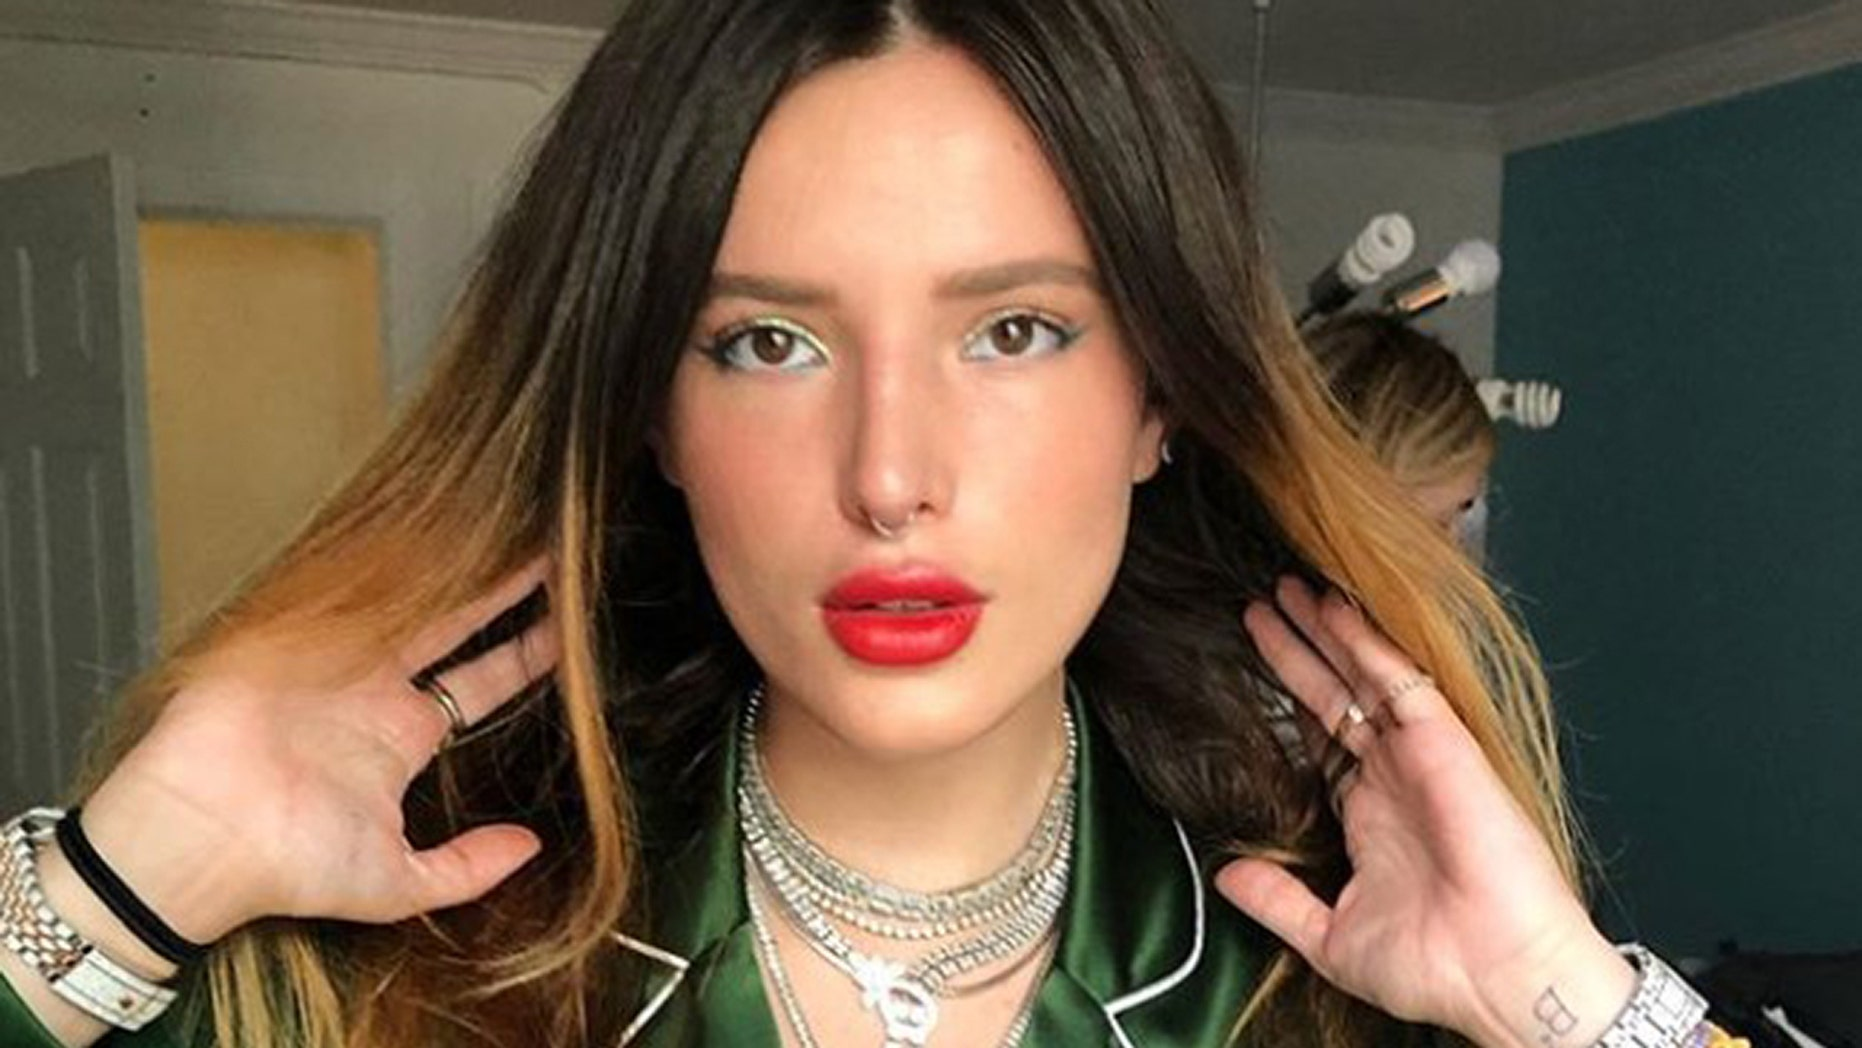 Westlake Legal Group Bella-Thorne-Insta-thumb Bella Thorne comes out as pansexual: 'You like what you like' Gerren Keith Gaynor fox-news/person/bella-thorne fox-news/entertainment/celebrity-news fox news fnc/entertainment fnc article 835e1f4a-e5c8-5ed2-84a5-c8085dd192a6